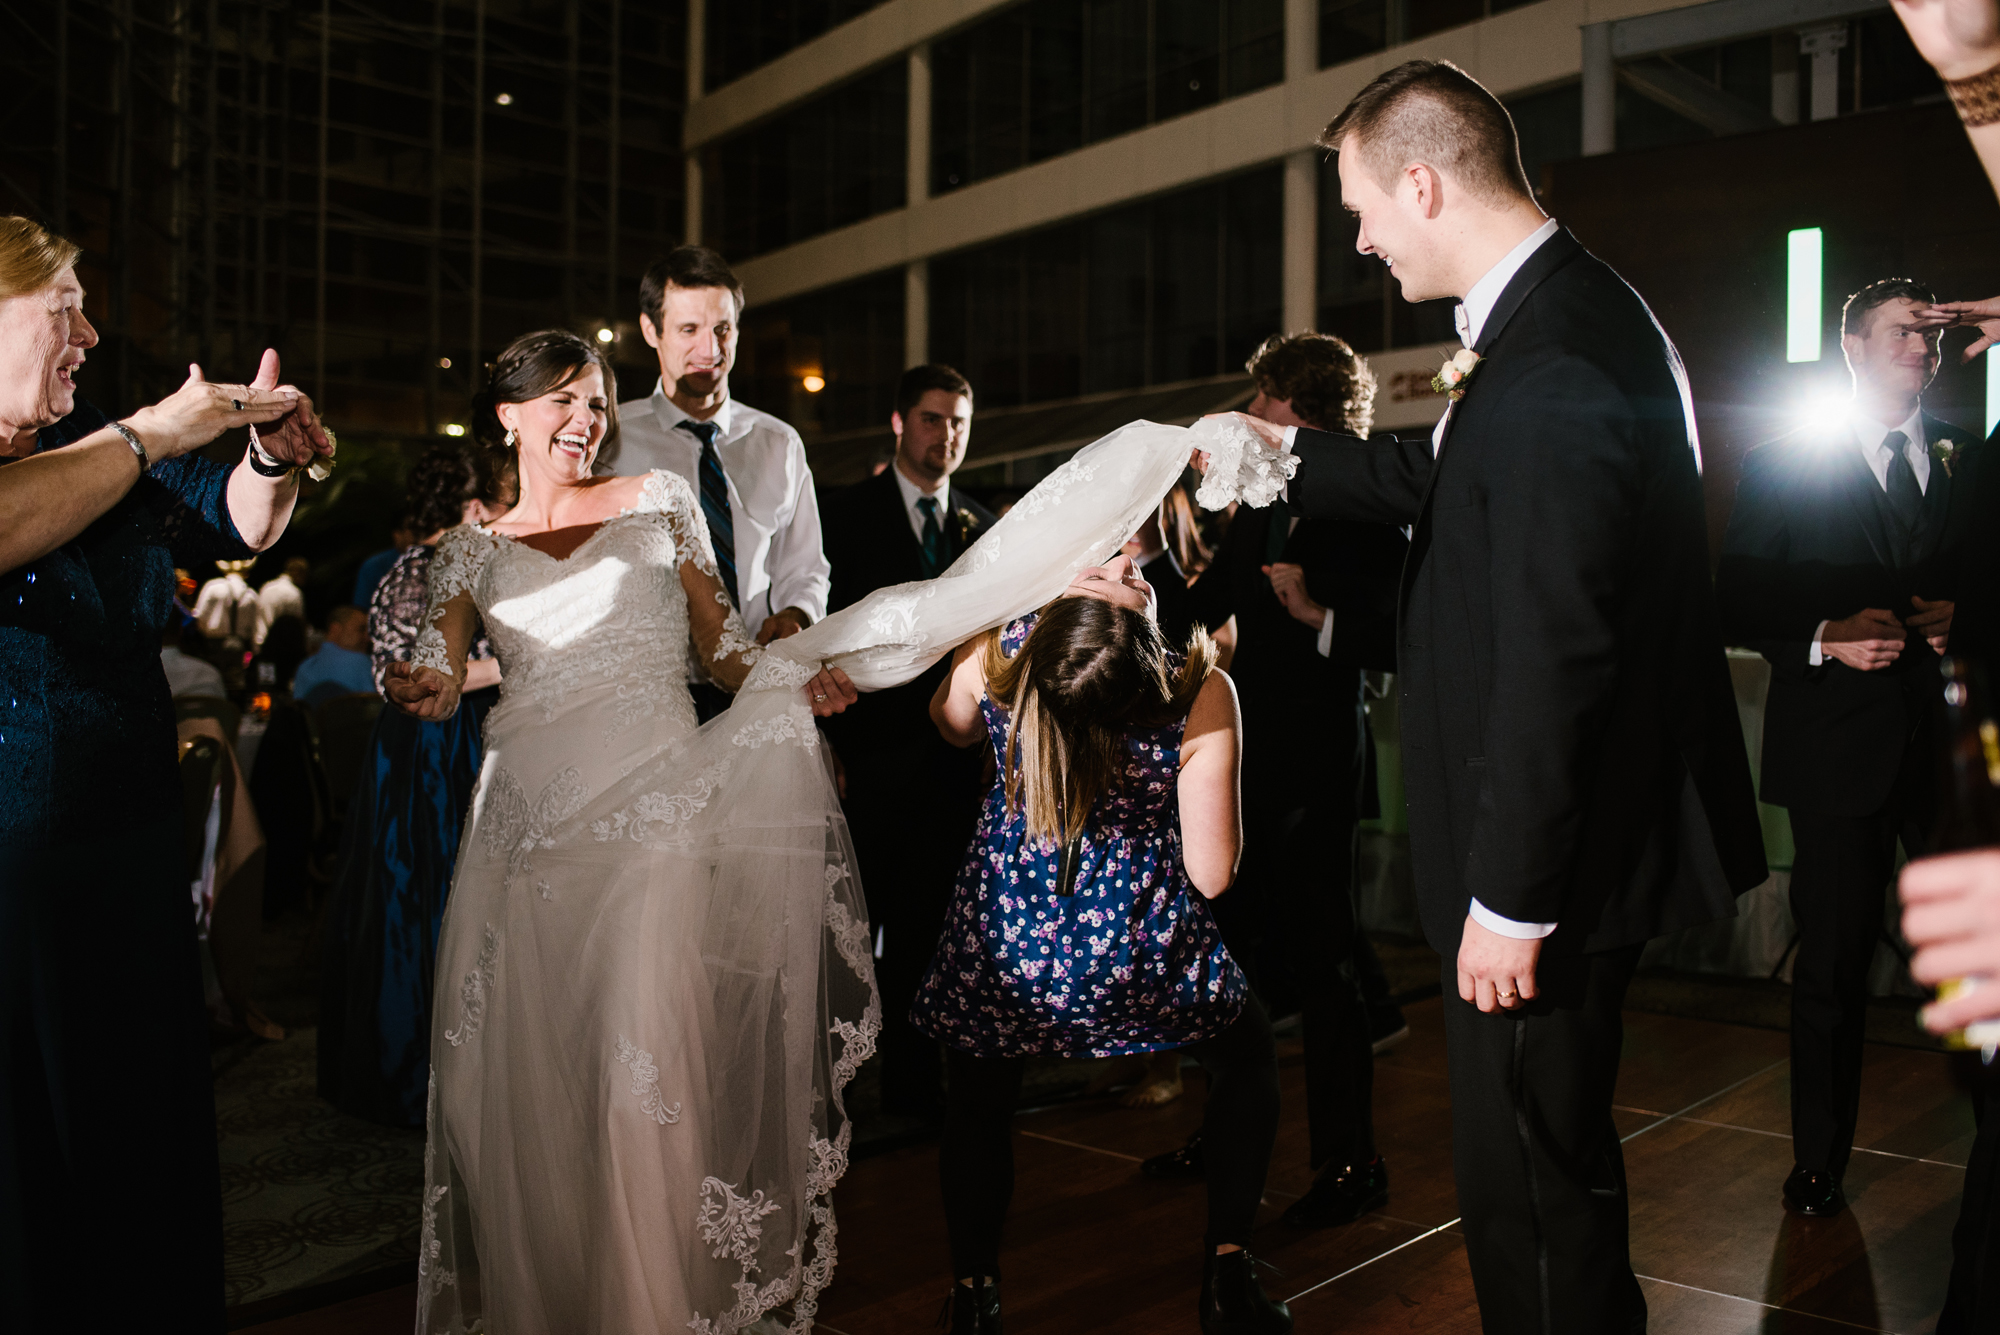 guest doing the limbo under bride's dress at wedding reception